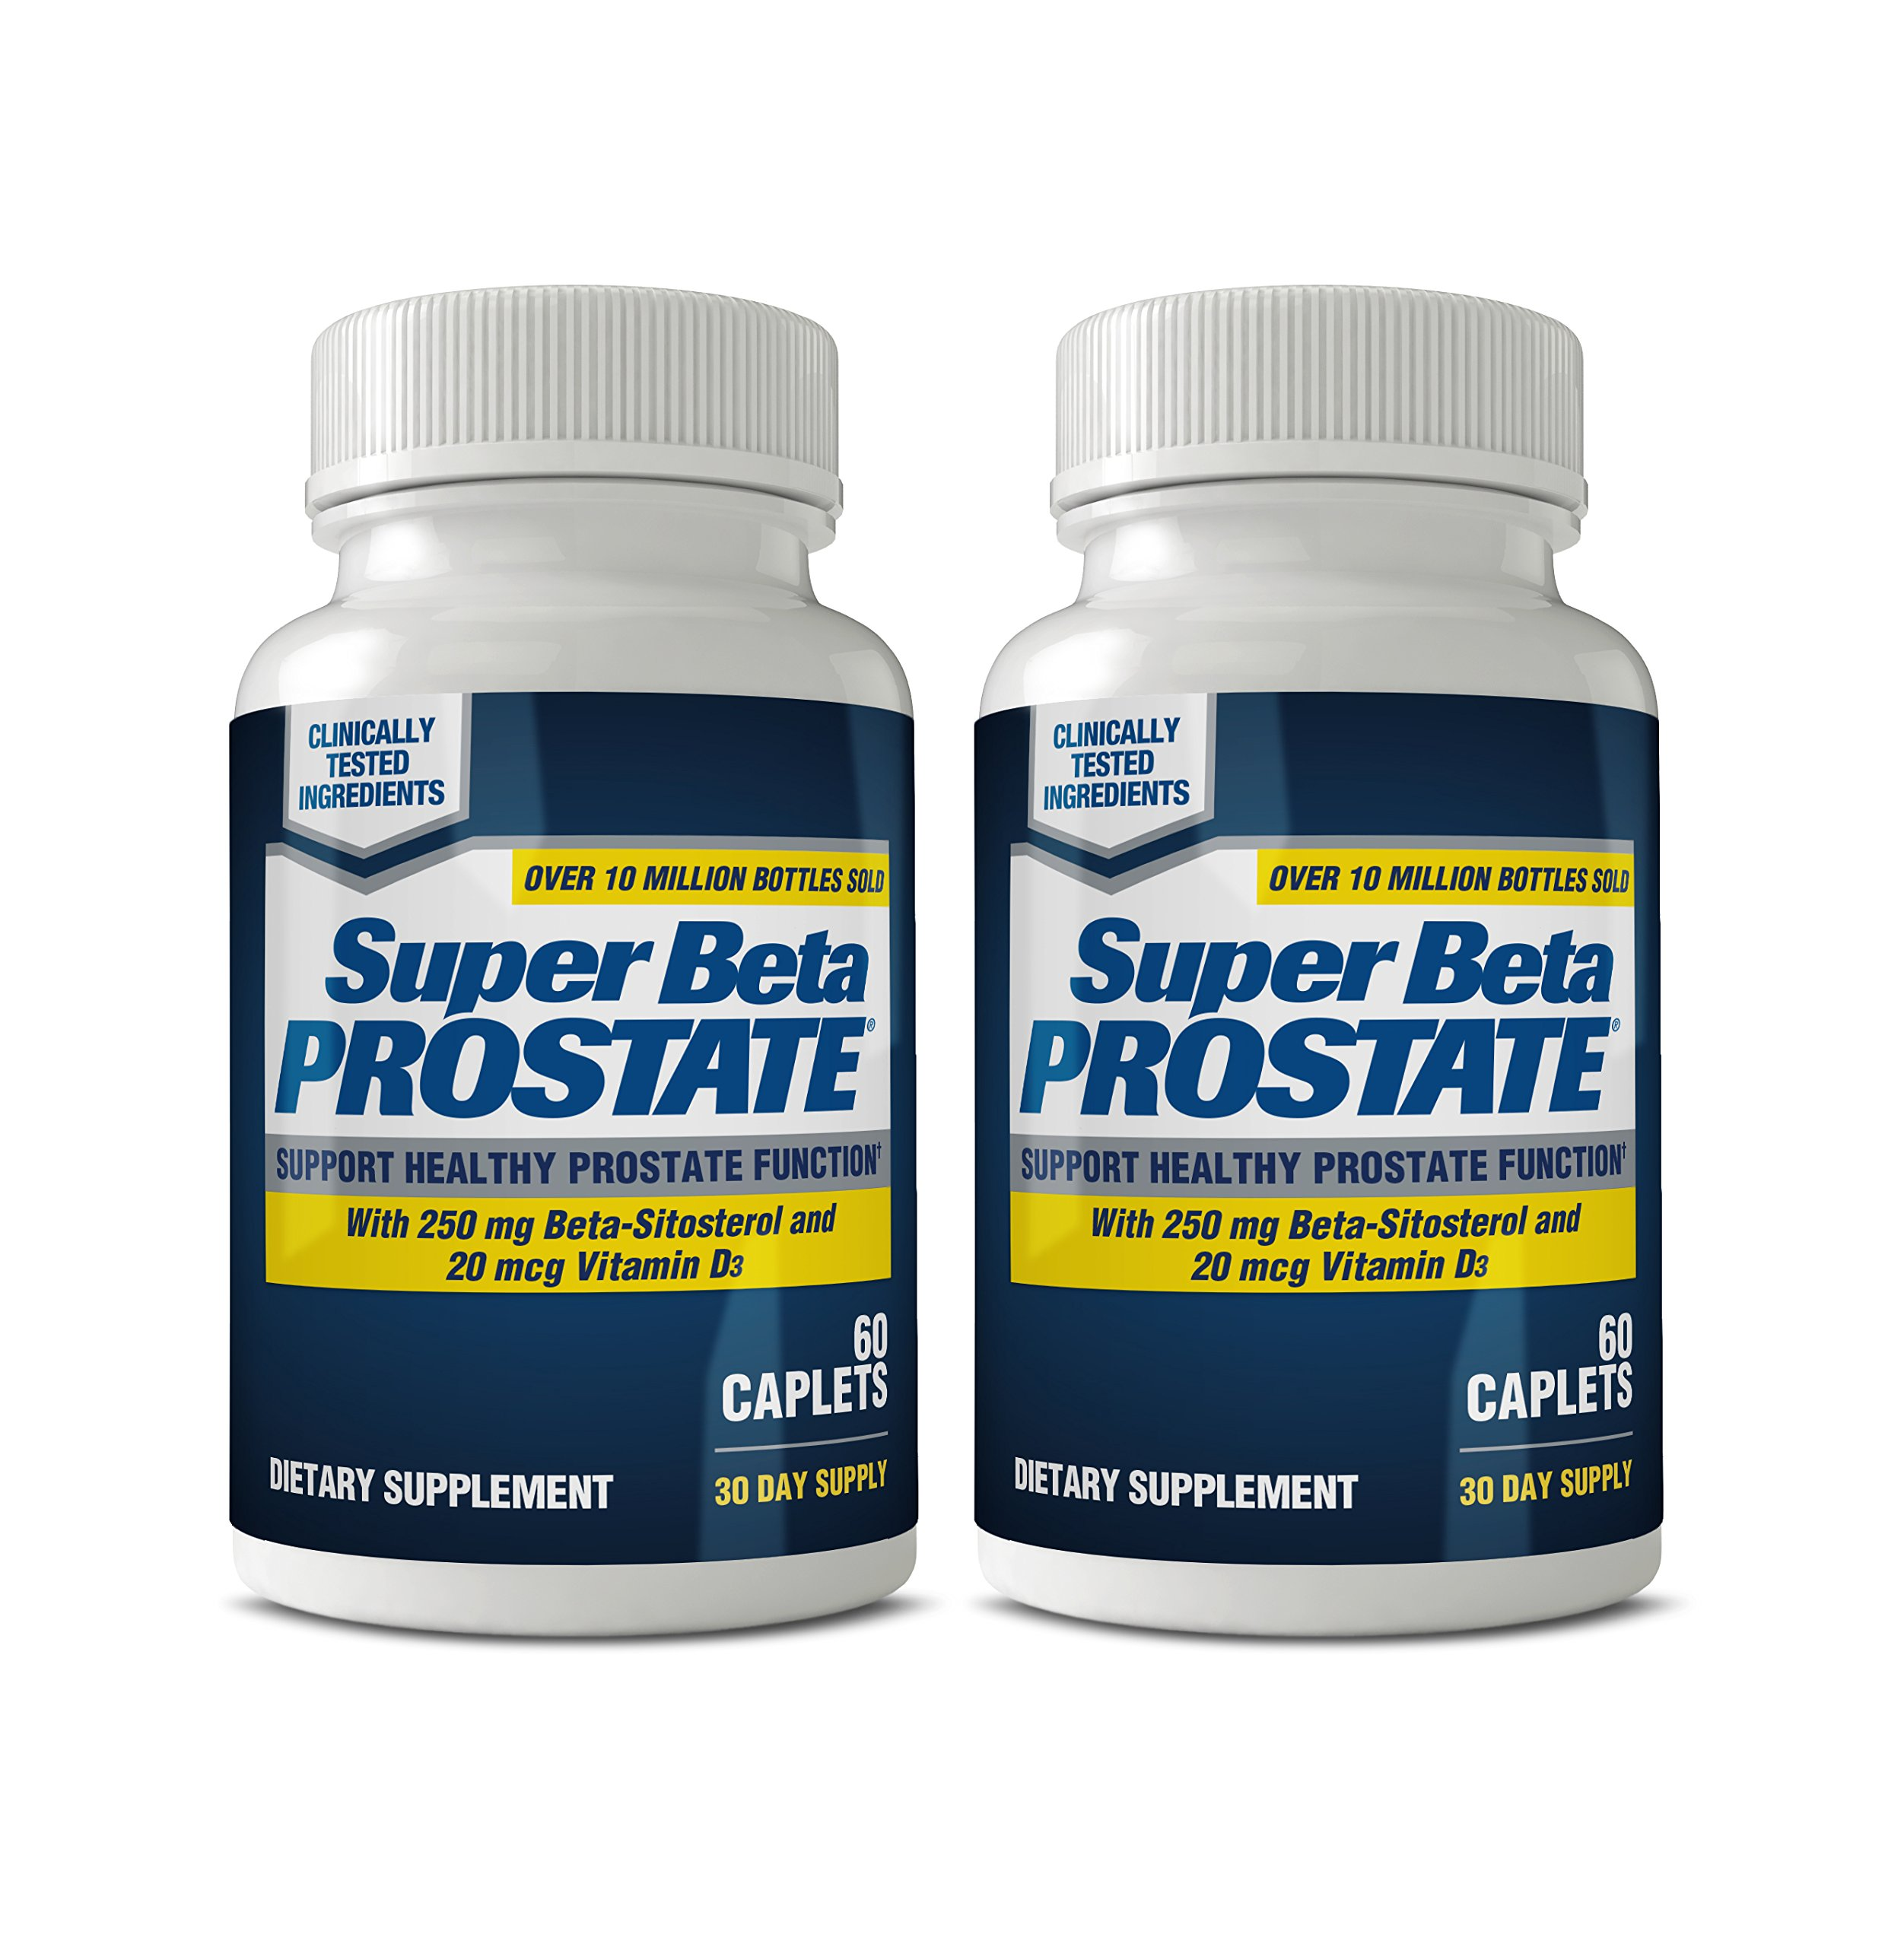 Super Beta Prostate Supplement for Men - Urinary Health & Prostate Support w/Beta Sitosterol, not Saw Palmetto - Reduce Bathroom Trips, Promote Sleep, Better Bladder Emptying (120 Caplets, 2-Pack) by SUPER BETA PROSTATE